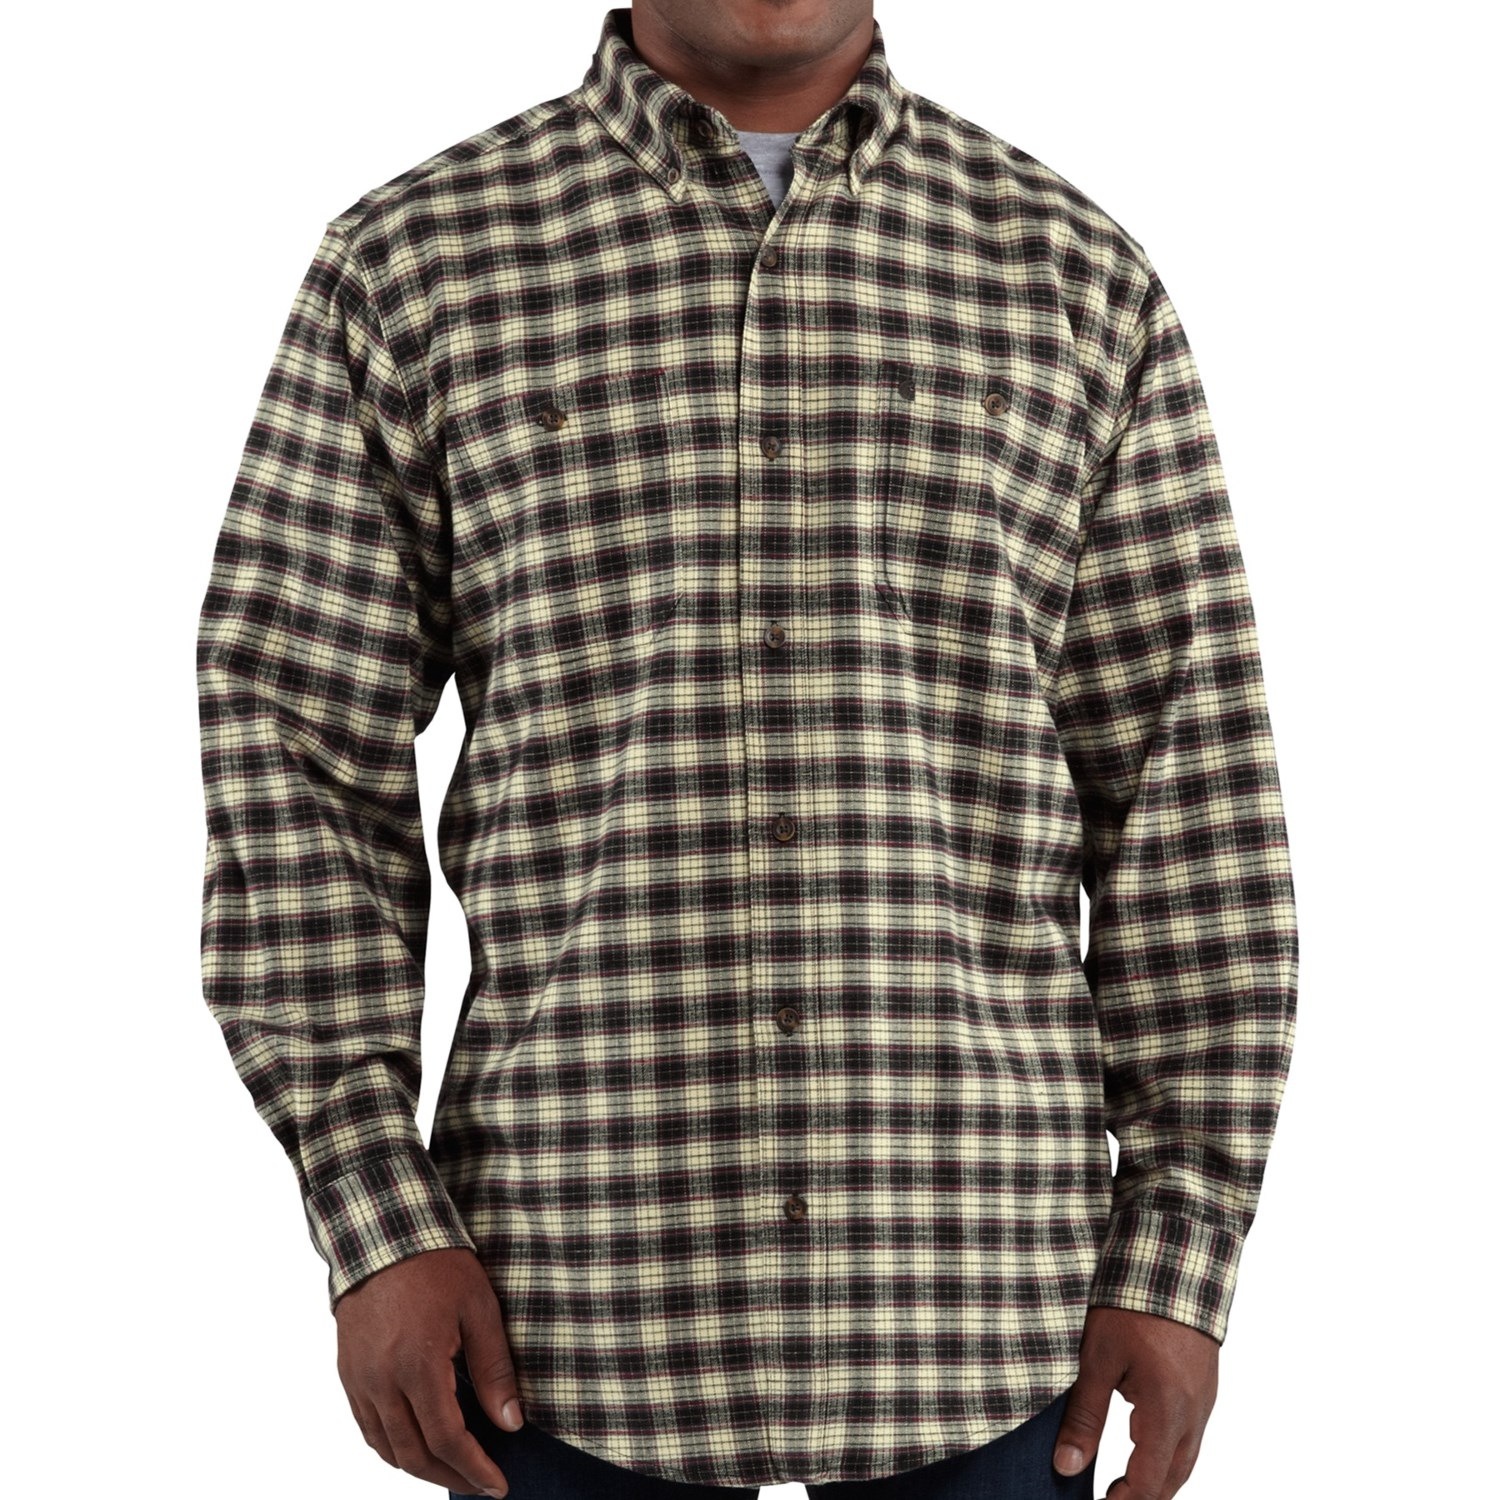 Find great deals on eBay for mens flannel plaid shirts. Shop with confidence.